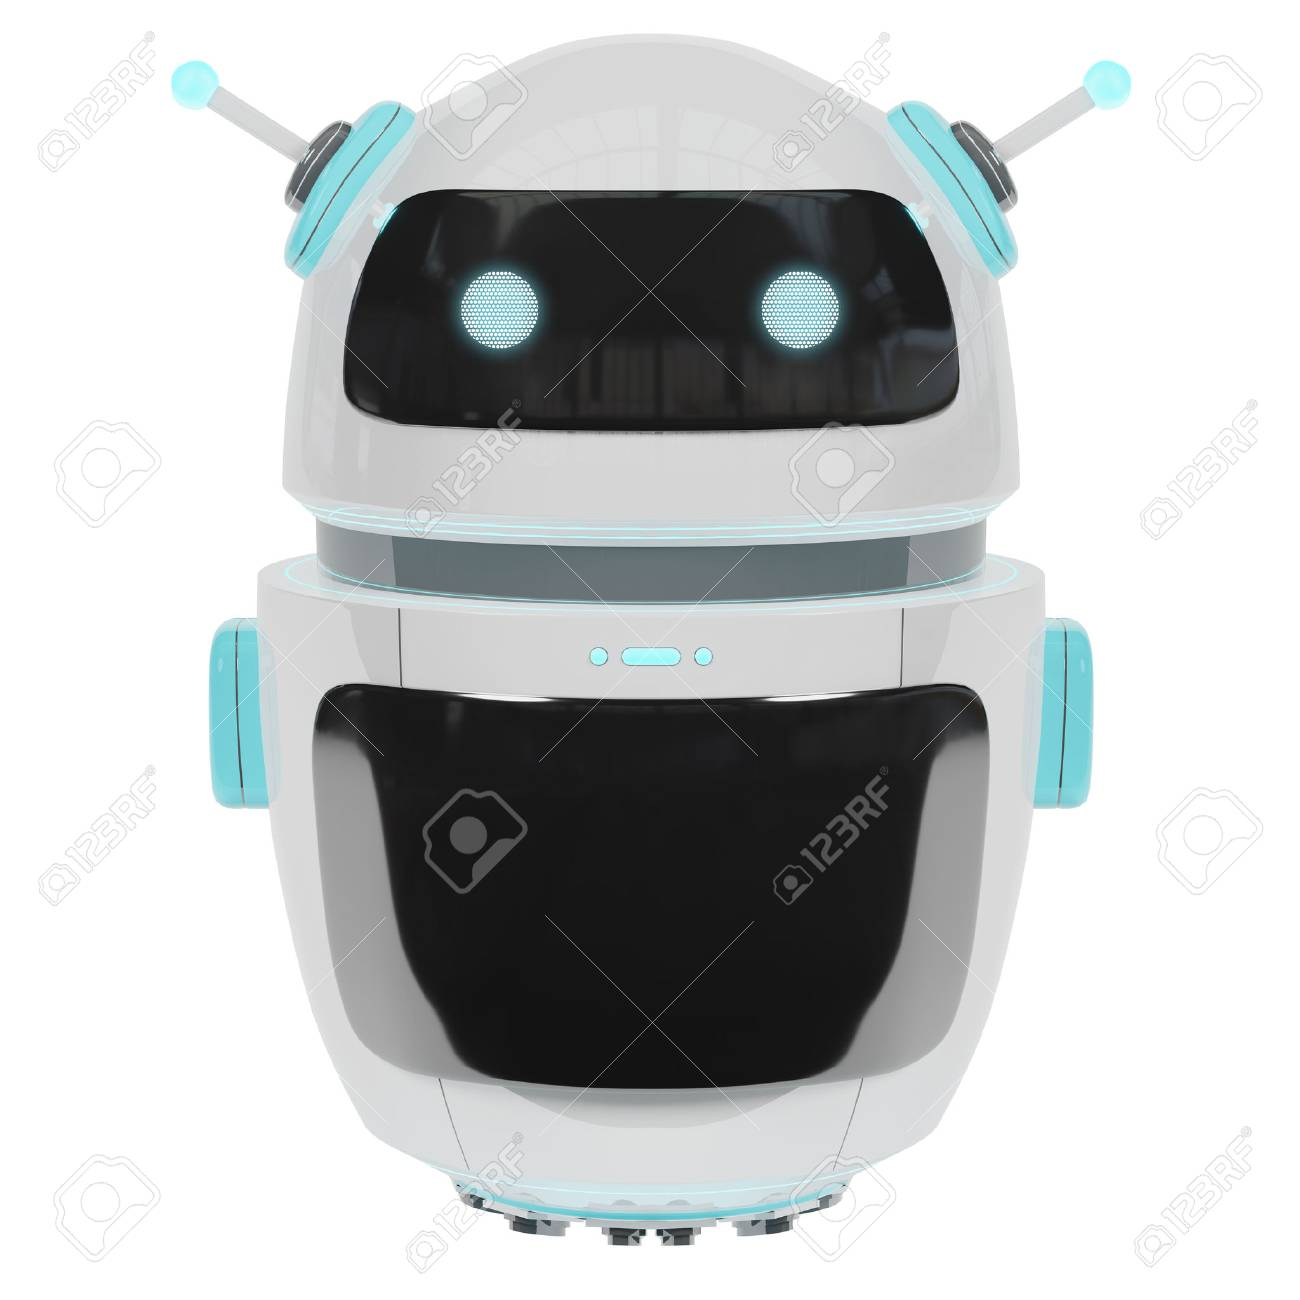 Futuristic digital chatbot isolated on white background 3D rendering - 90938606